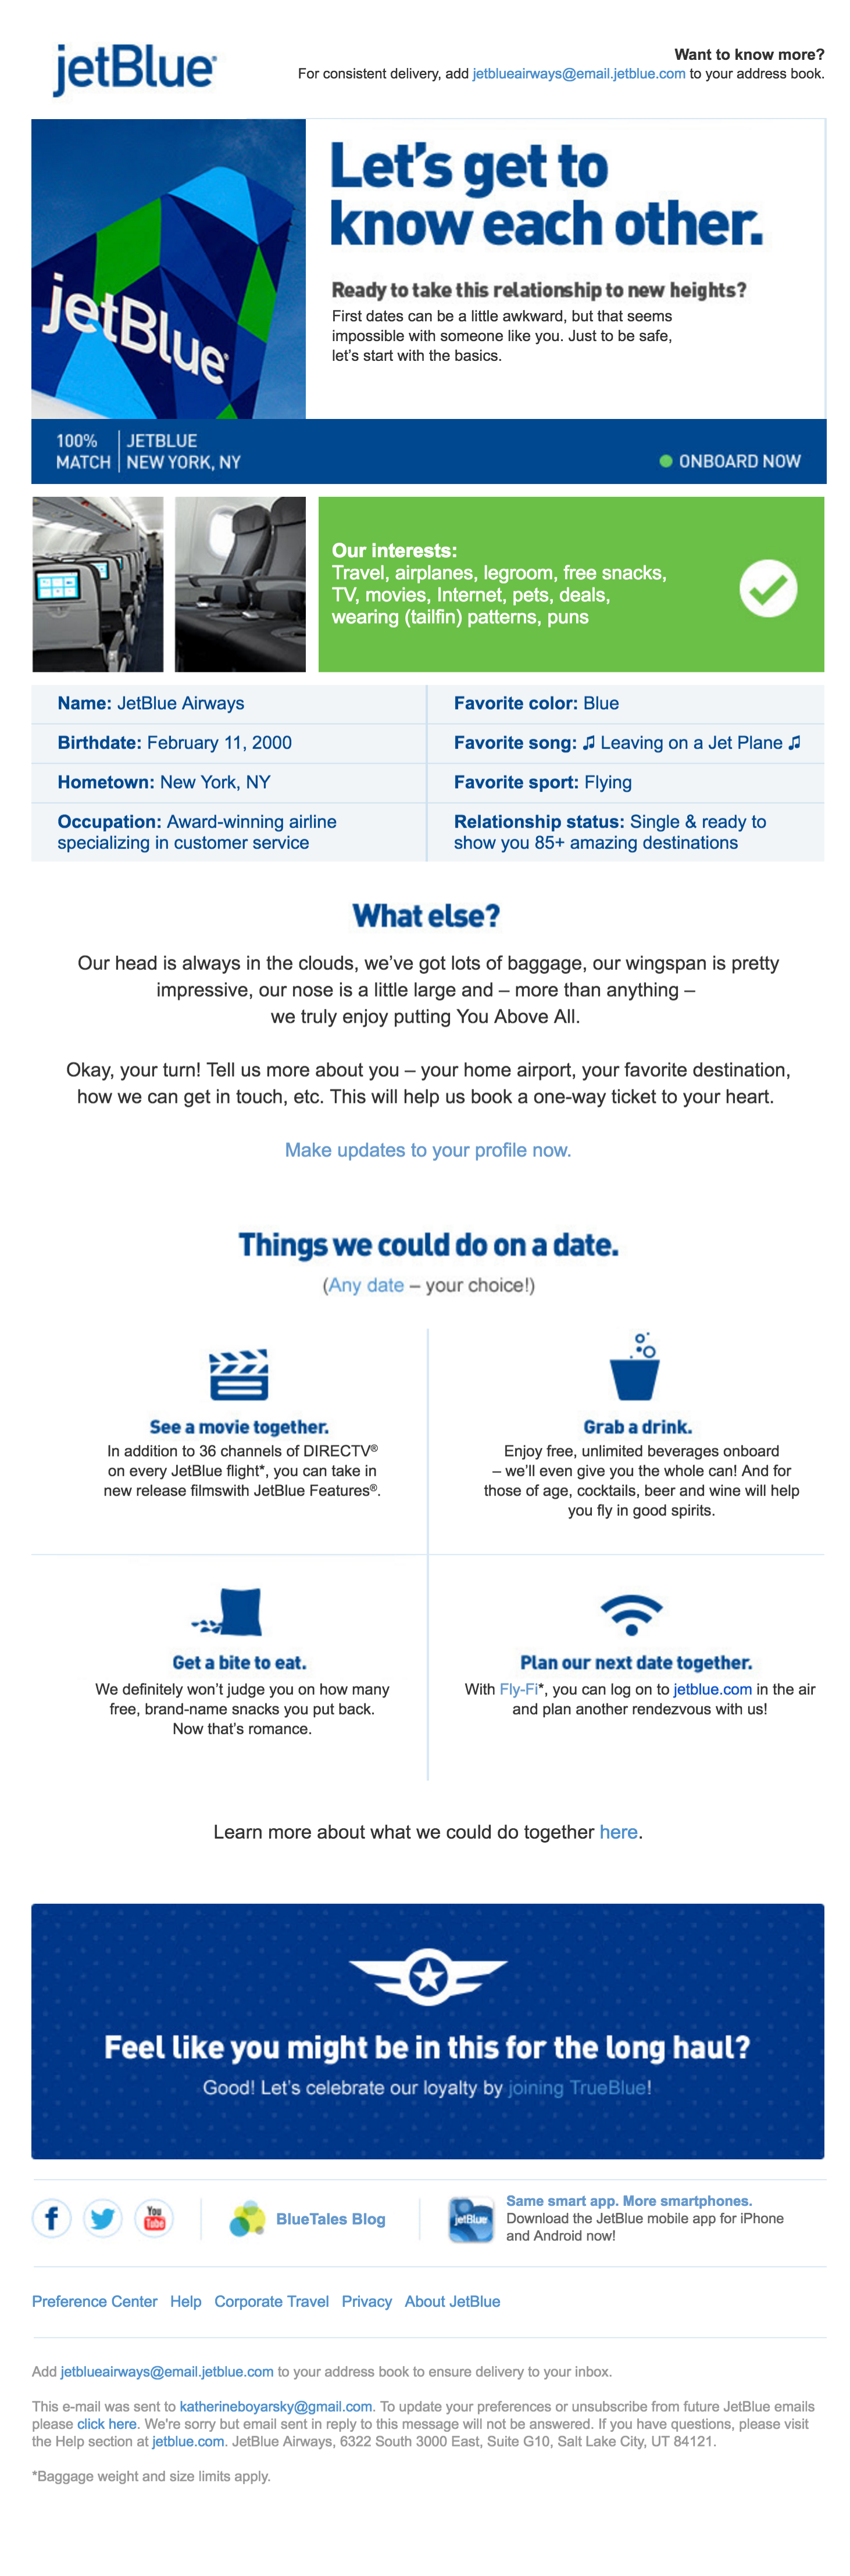 JetBlue_Email_Cropped.png?noresize